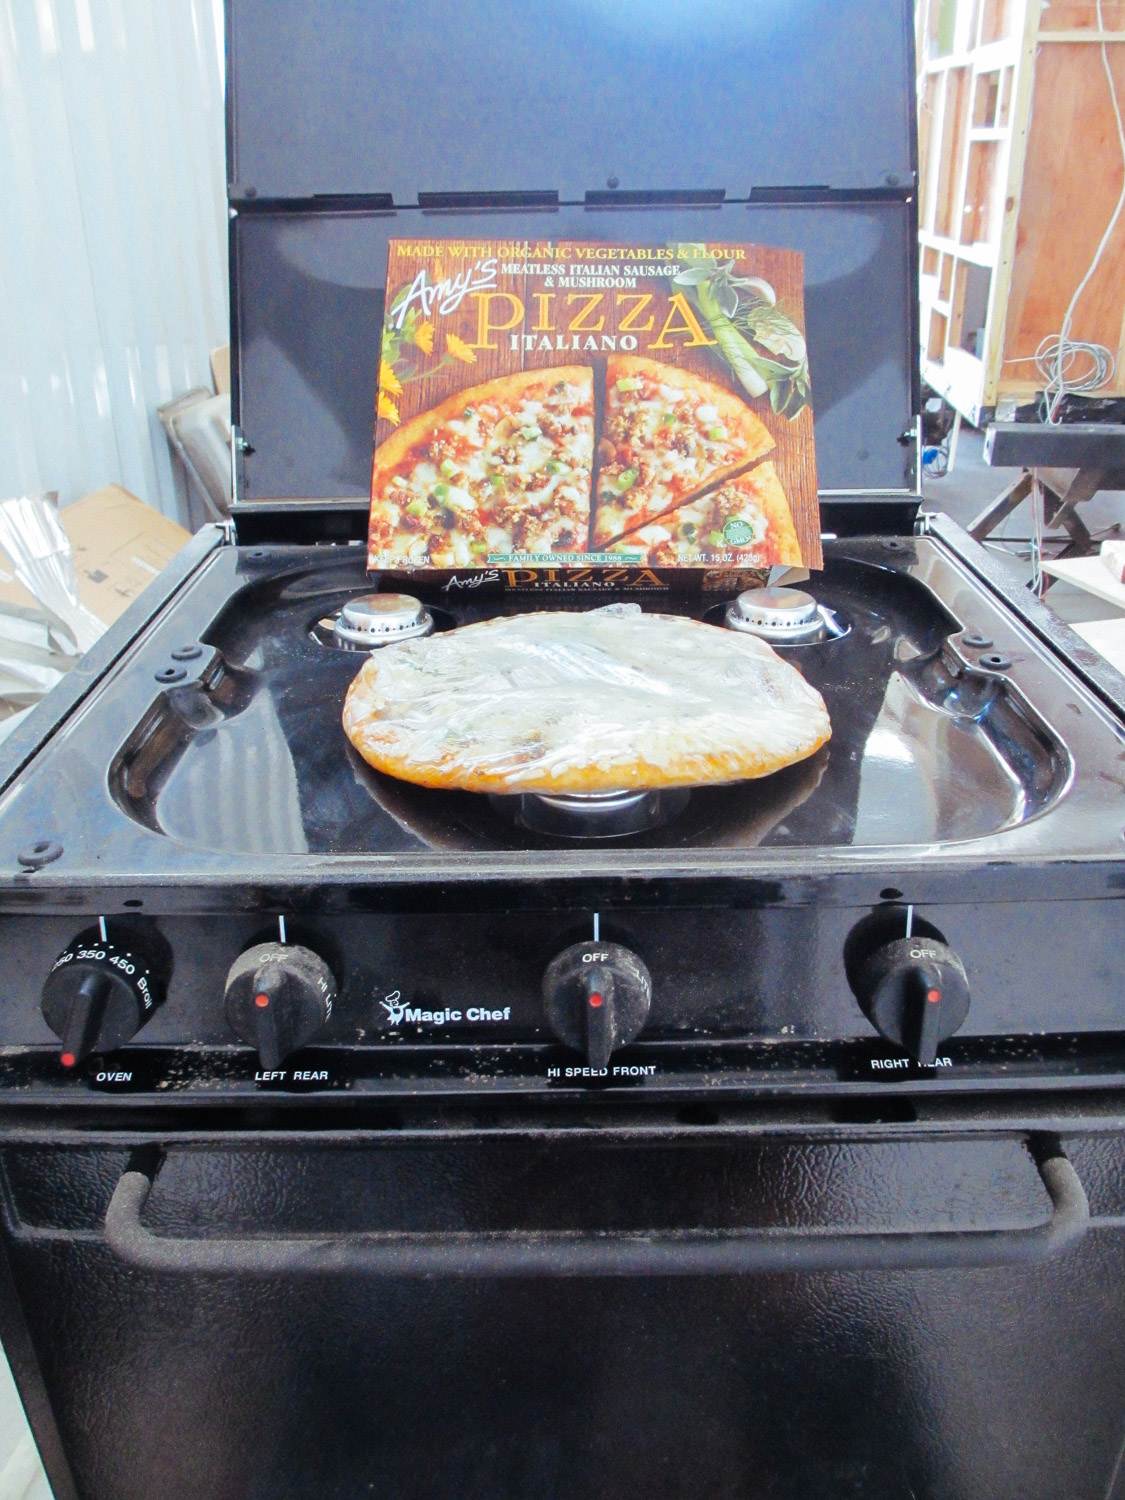 We made sure the RV stove/oven could actually run of camping propane fuel bottles by heating up a frozen pizza.